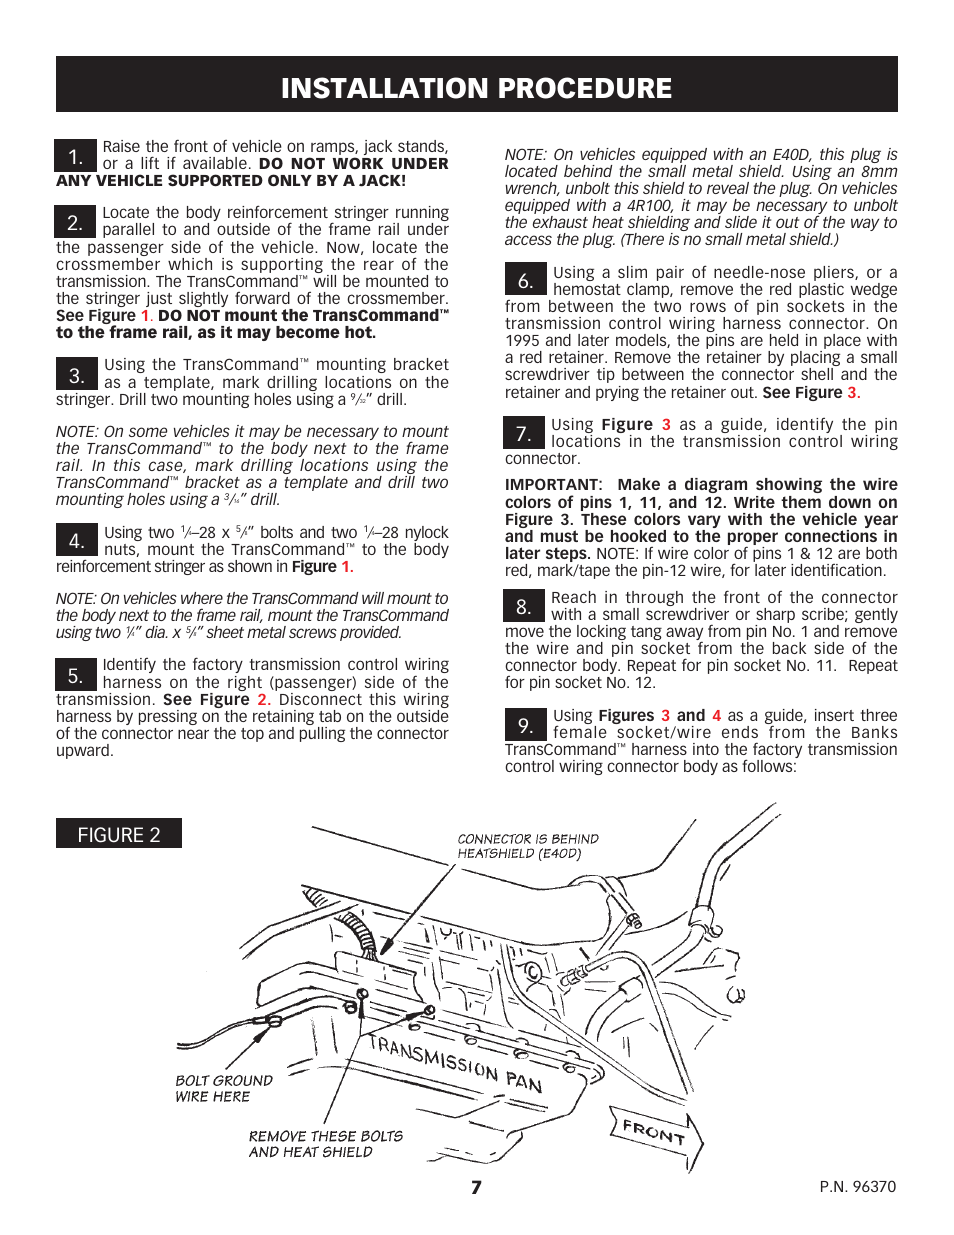 Installation Procedure Banks Power Ford Trucks Gas 87 97 75l Case Wiring Harness Efi Powertrain Transcommand For E40d 4r100 Transmissions User Manual Page 7 10